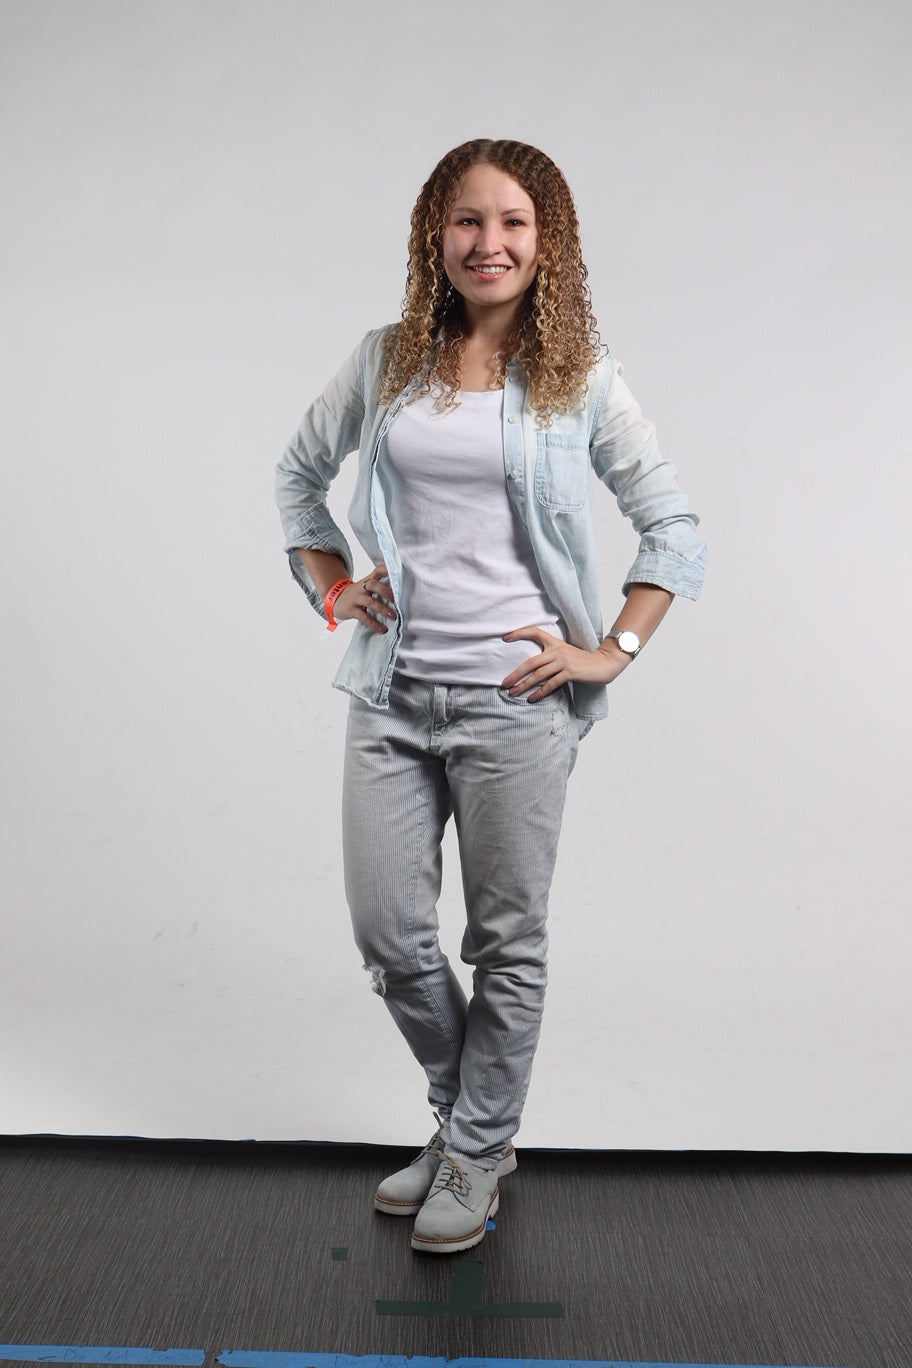 A blonde girl wearing grey pants, white shirt and light jacket, before hiring a stylist